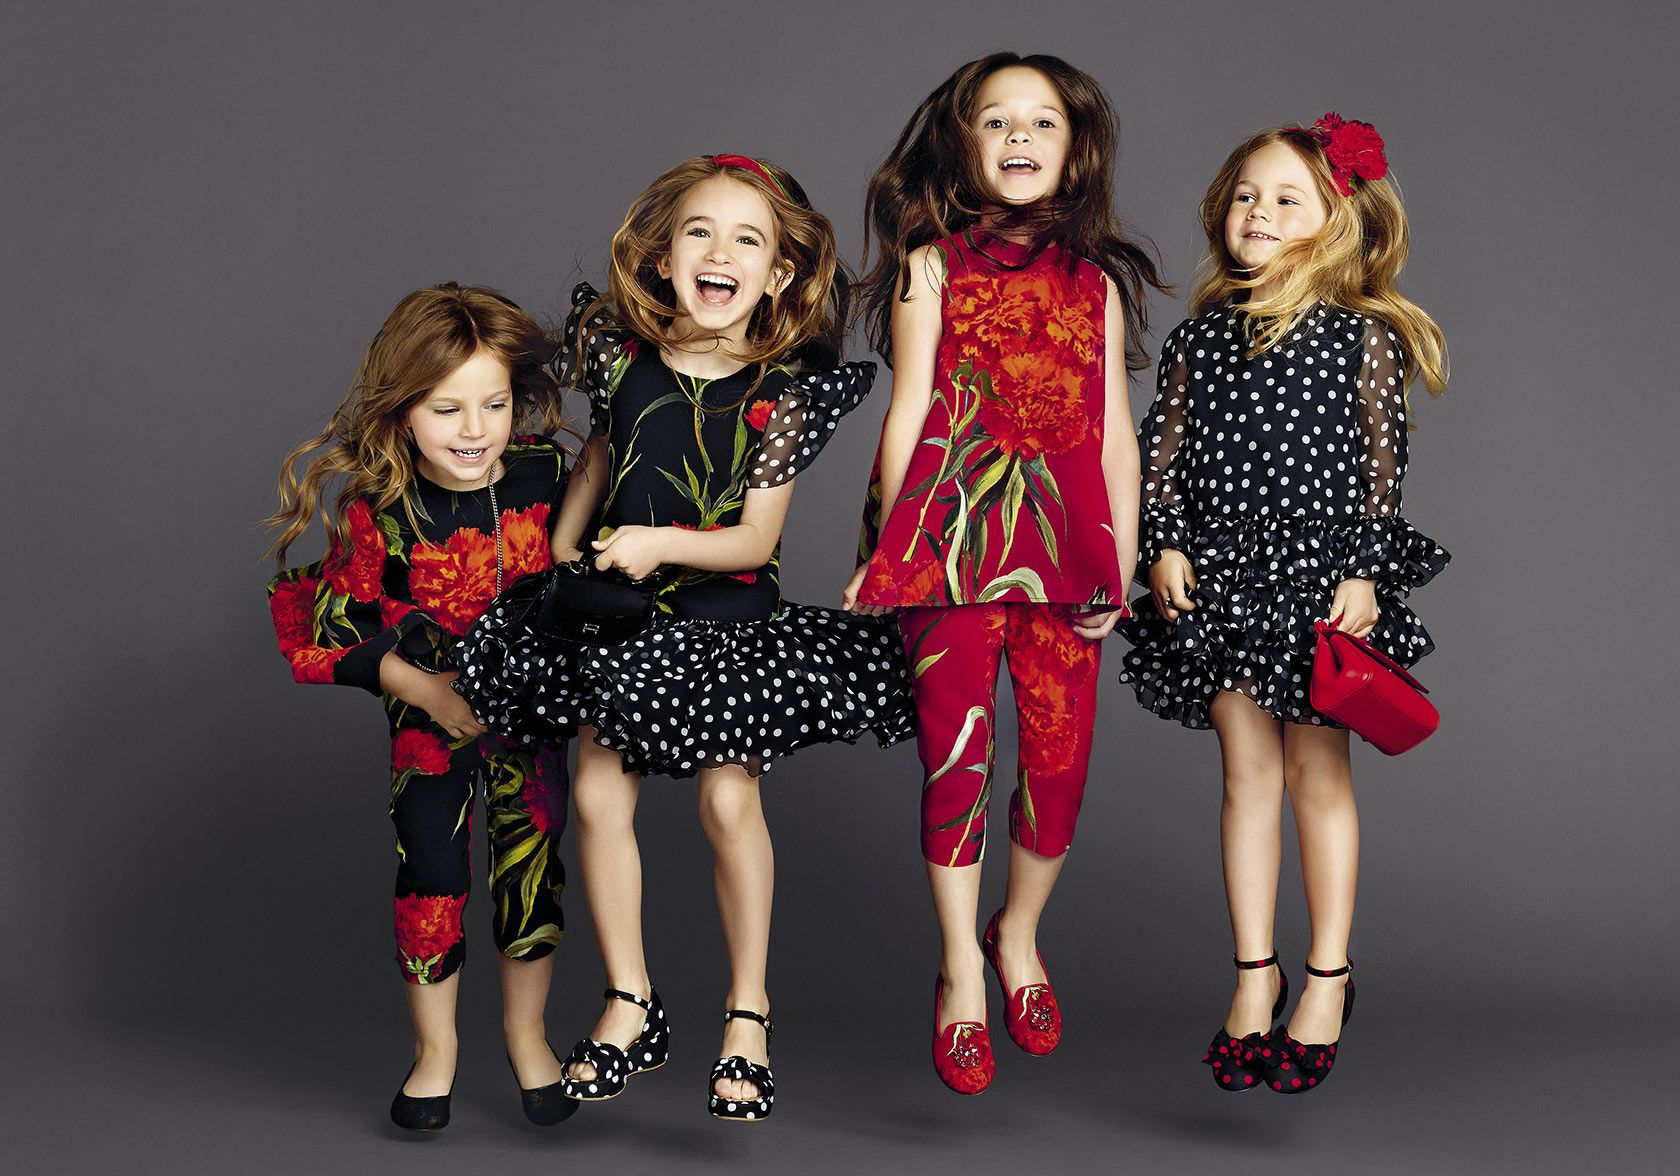 22f53a1d0 Dolce & Gabbana Children Summer Collection 2015 #2   Dolce and ...